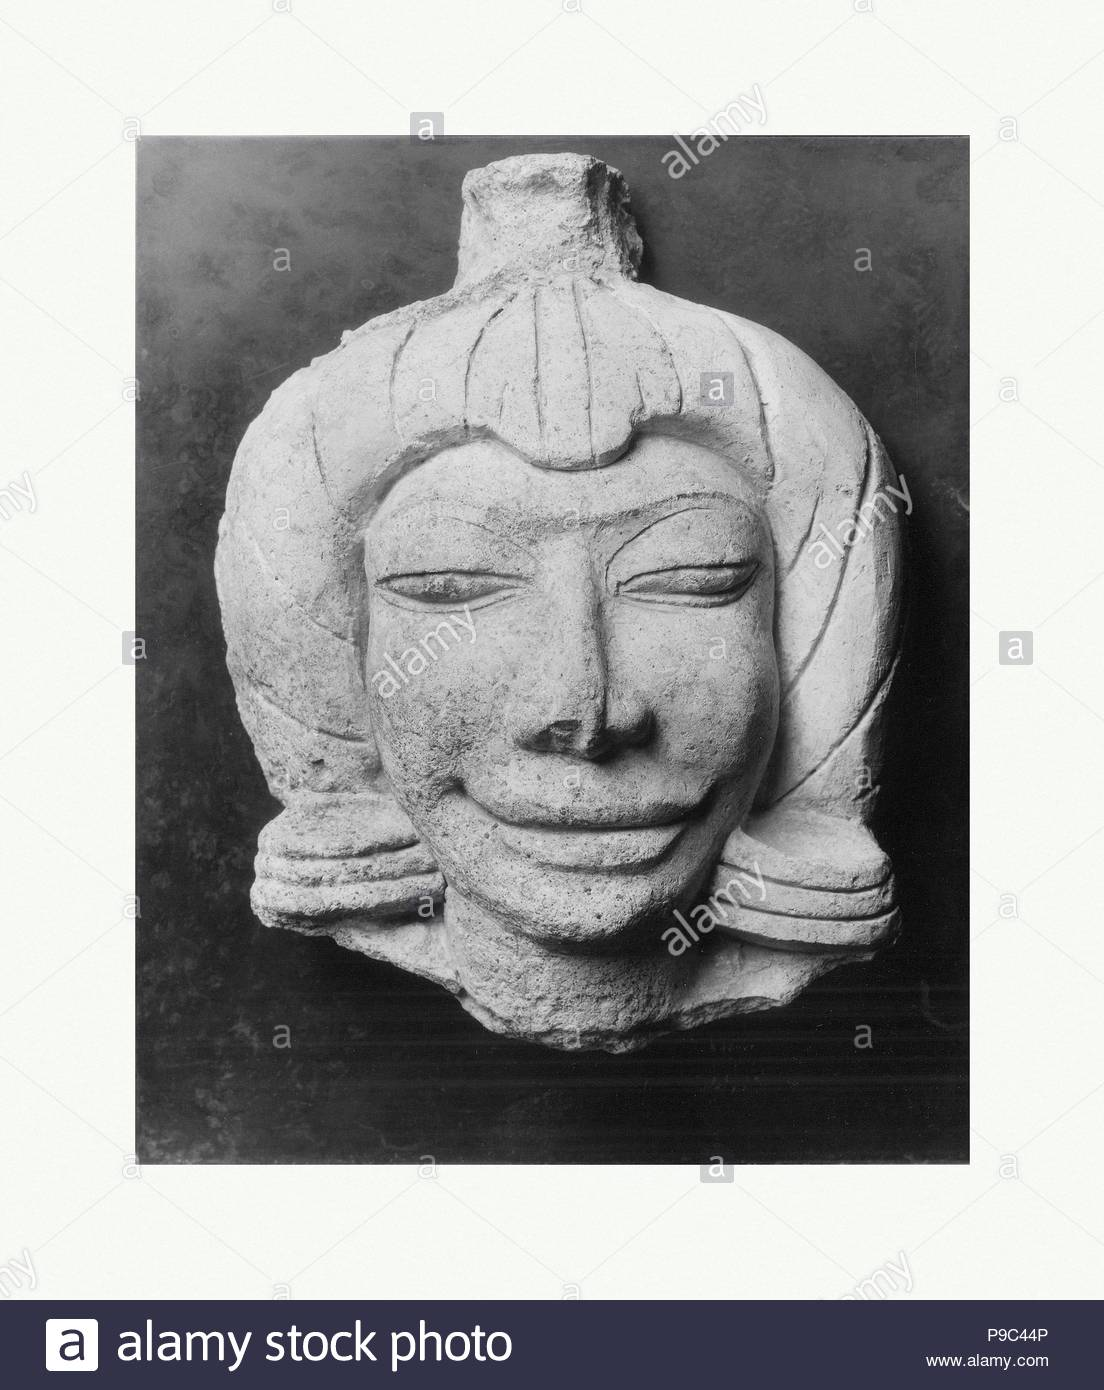 Head of a Male Figure, Mon-Dvaravati period, 8th–9th century, Thailand (Ratchaburi Province, Ku Bua), Stucco with color, H. 6 7/8 in. (17.5 cm), Sculpture, In Thailand, stupas and temples were often embellished with terracotta and stucco sculptures. In some instances, even large-scale narrative friezes illustrating stories from the Buddha's life survive. In contrast to the stone and metal images that served as the primary objects of worship, these sculptures in plastic media show a greater degree of spontaneity and freedom of expression. - Stock Image